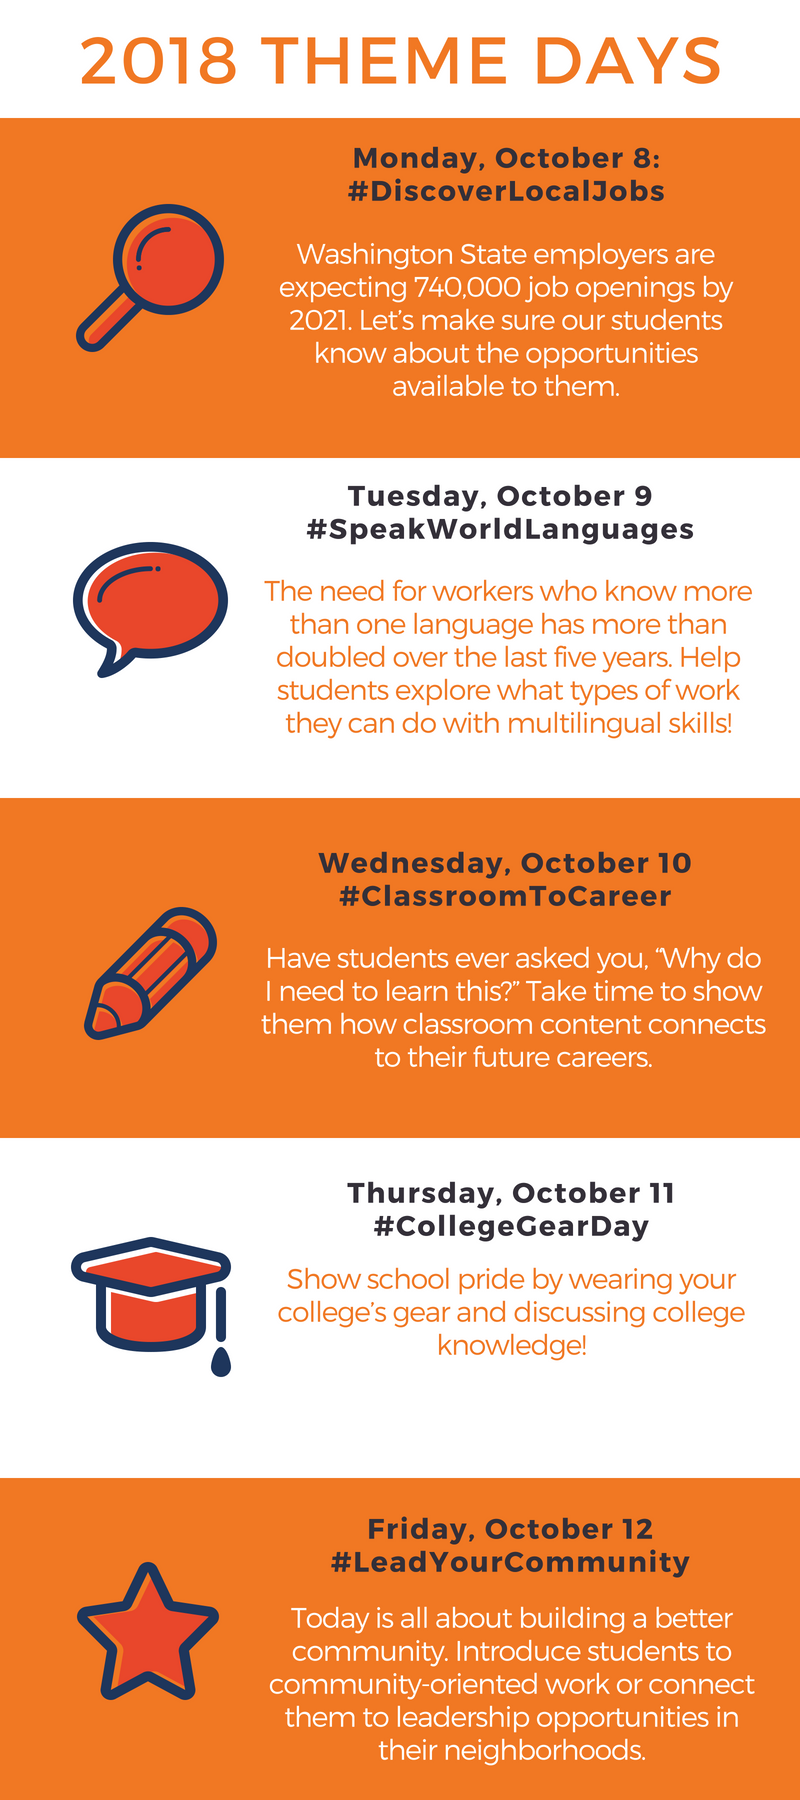 The five DiscoverU 2018 Theme Days_ Discover Local Jobs_ Speak World Languages_ Classroom to Career_ College Gear Day_ and Lead Your Community.